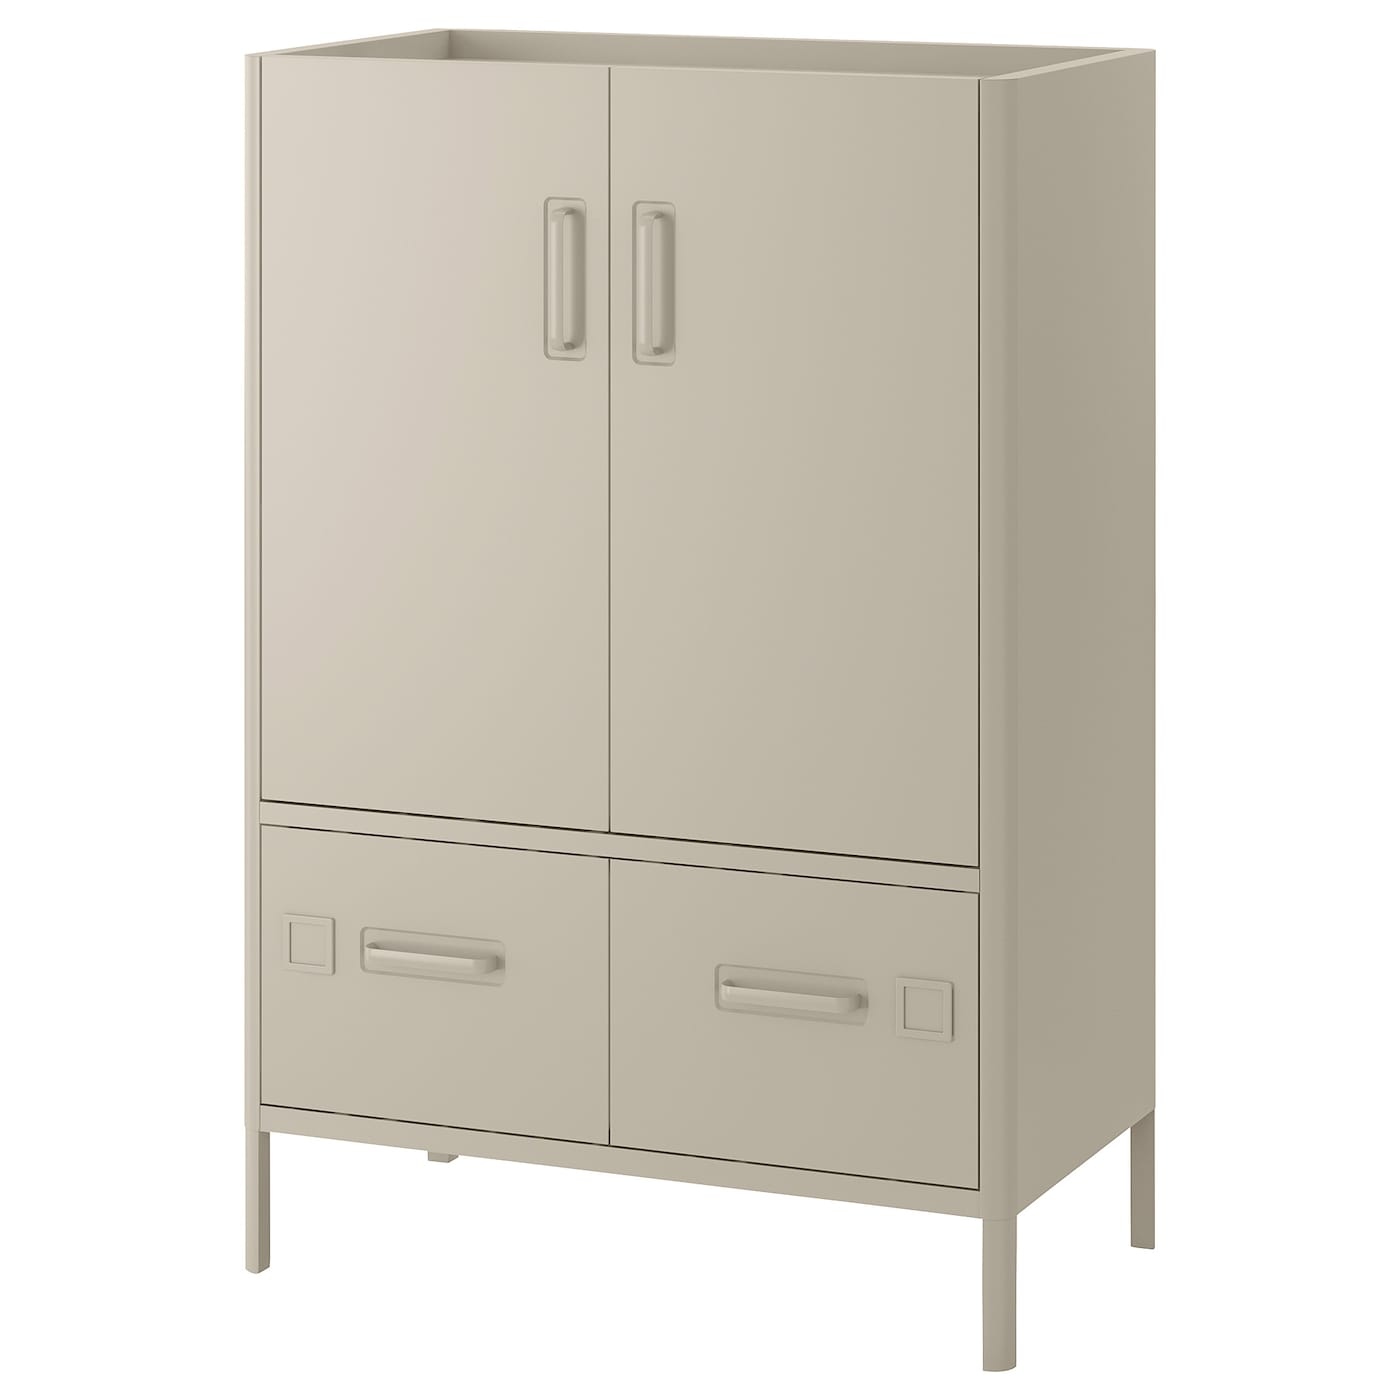 IKEA IDÅSEN cabinet with doors and drawers Integrated damper makes doors close silently and gently.